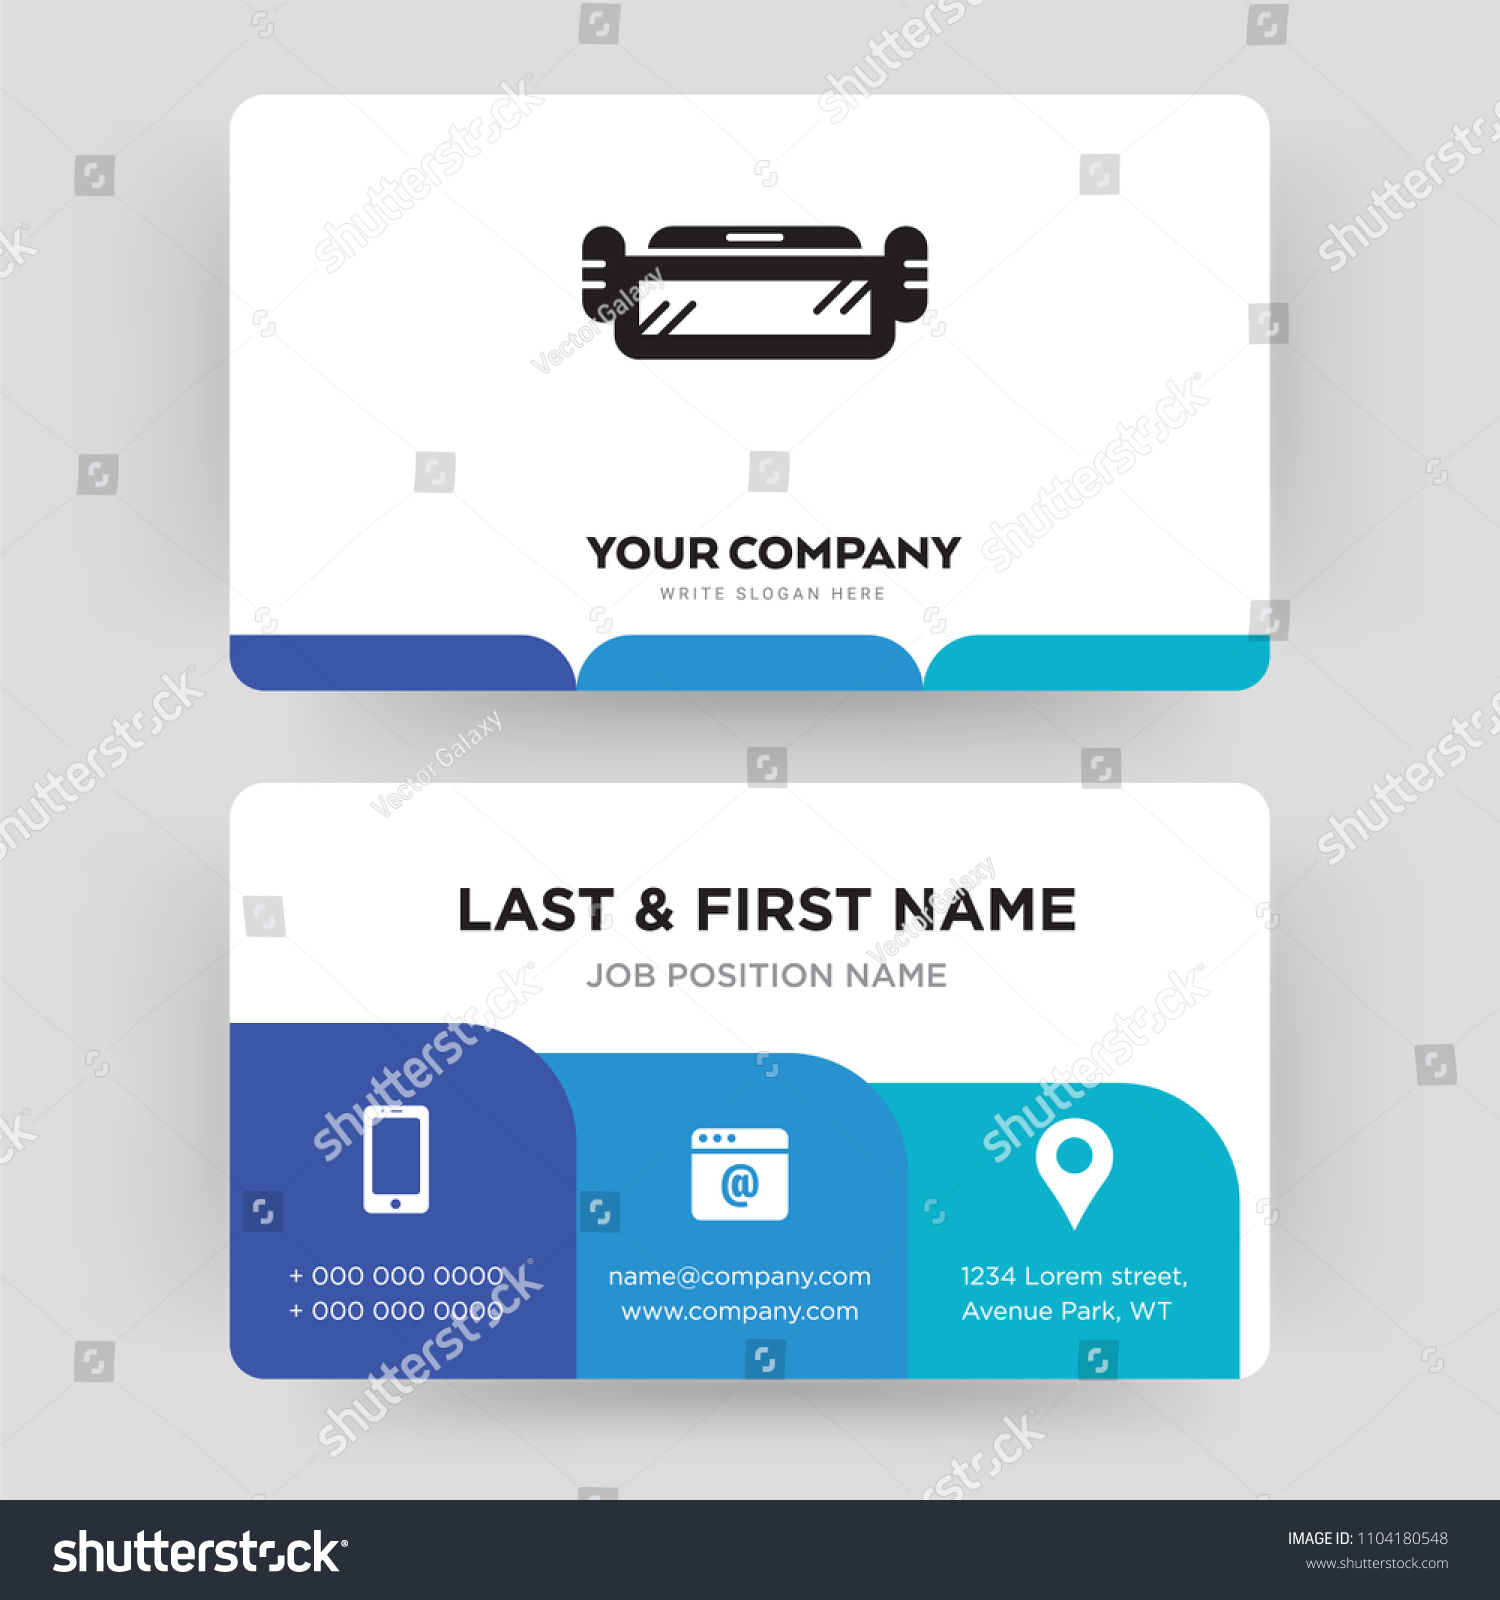 Ar Glasses Business Card Design Template Stock Vector 1104180548 ...